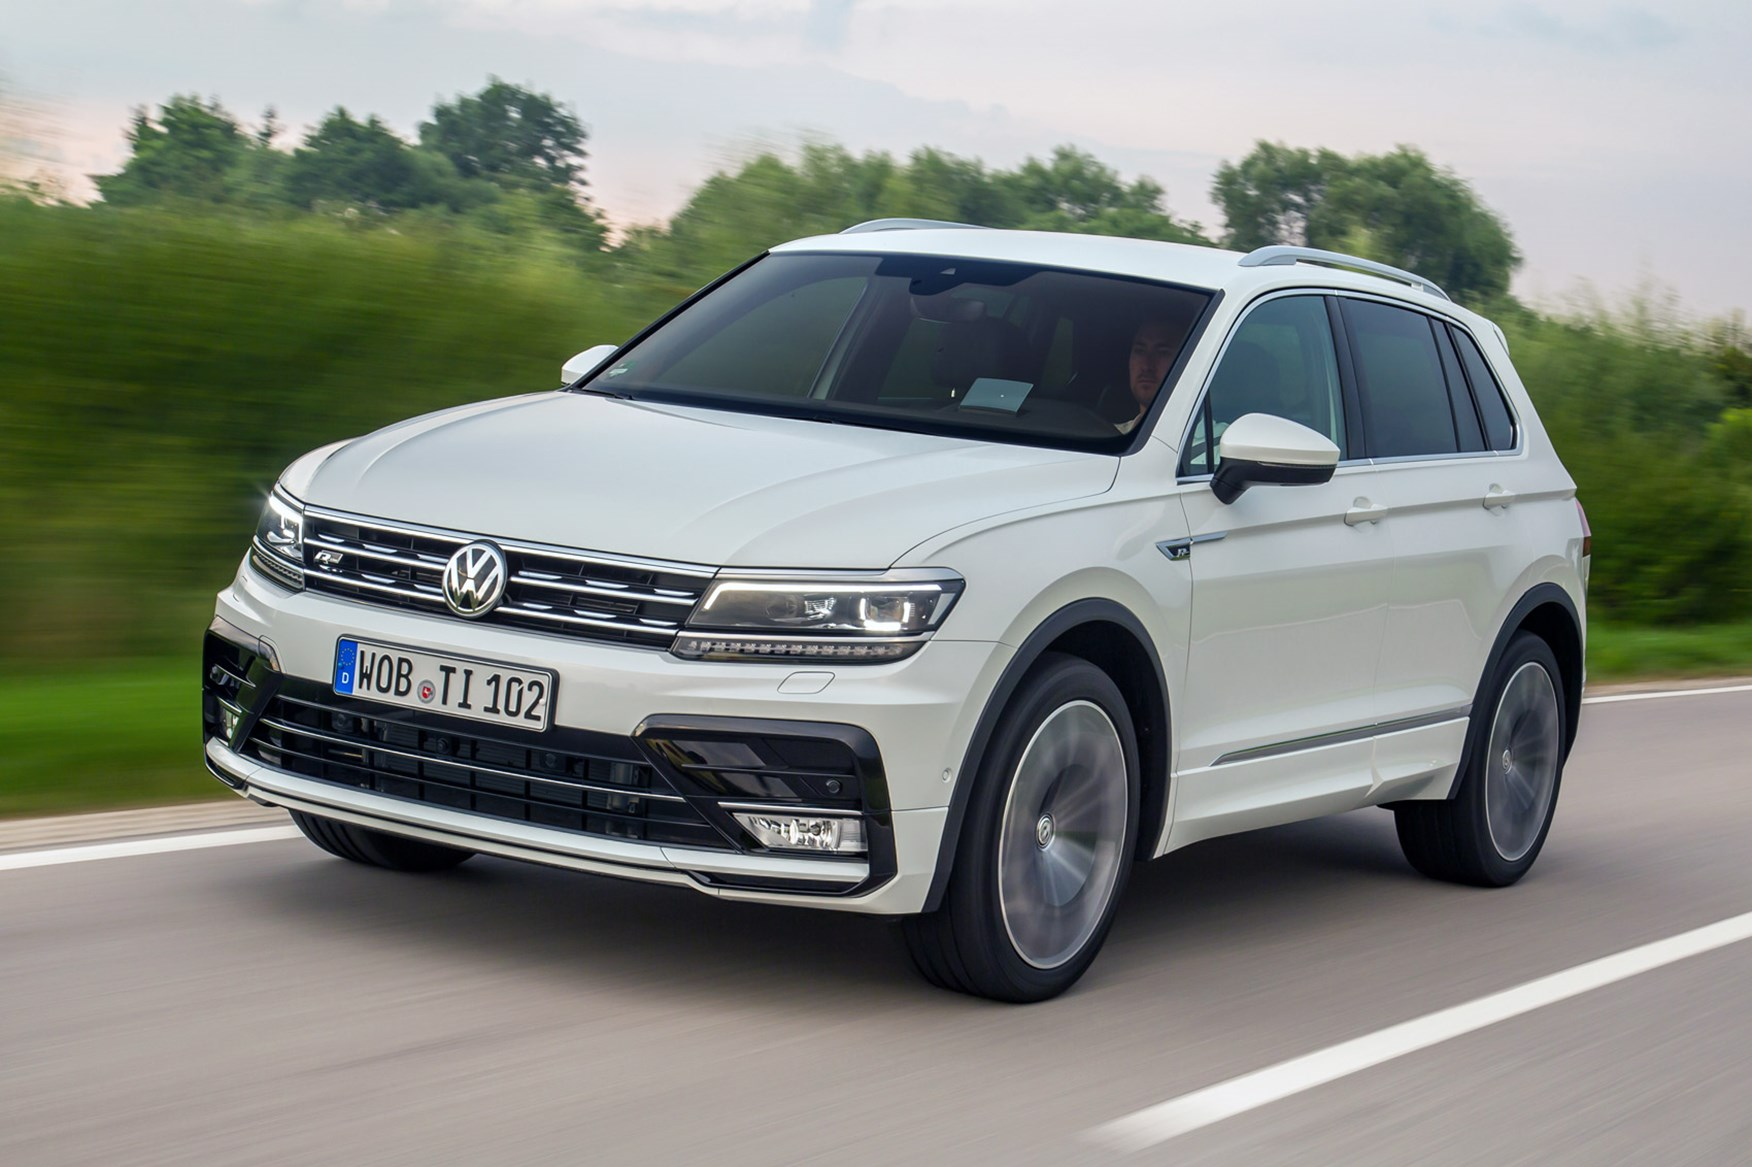 vw-tig-u-001 Interesting Info About 2018 Vw Tiguan R Line with Mesmerizing Pictures Cars Review